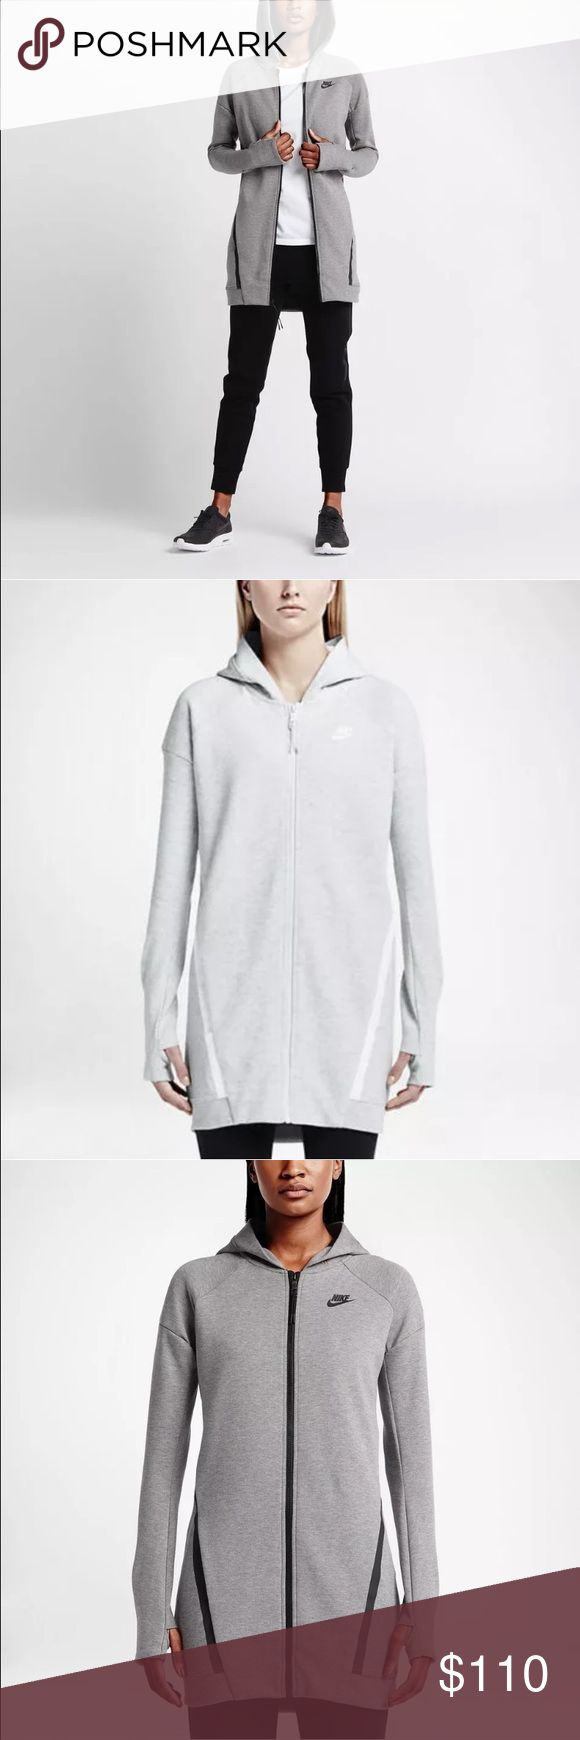 Nike Tech Fleece Mesh Cocoon Womens Jacket NWT WARMTH AND BREATHABILITY  The Nike Tech Fleece Mesh Cocoon Women's Jacket is made with an innovative cotton blend, an elongated silhouette and a mesh back panel for warm coverage and excellent ventilation.     Nike Tech Fleece helps keep you warm and comfortable Mesh panels provide optimal airflow Elongated silhouette enhances coverage Rib trim offers a comfortable, secure fit  Have Black in Size XS S M and L. Gray in size S. Heather White Size…